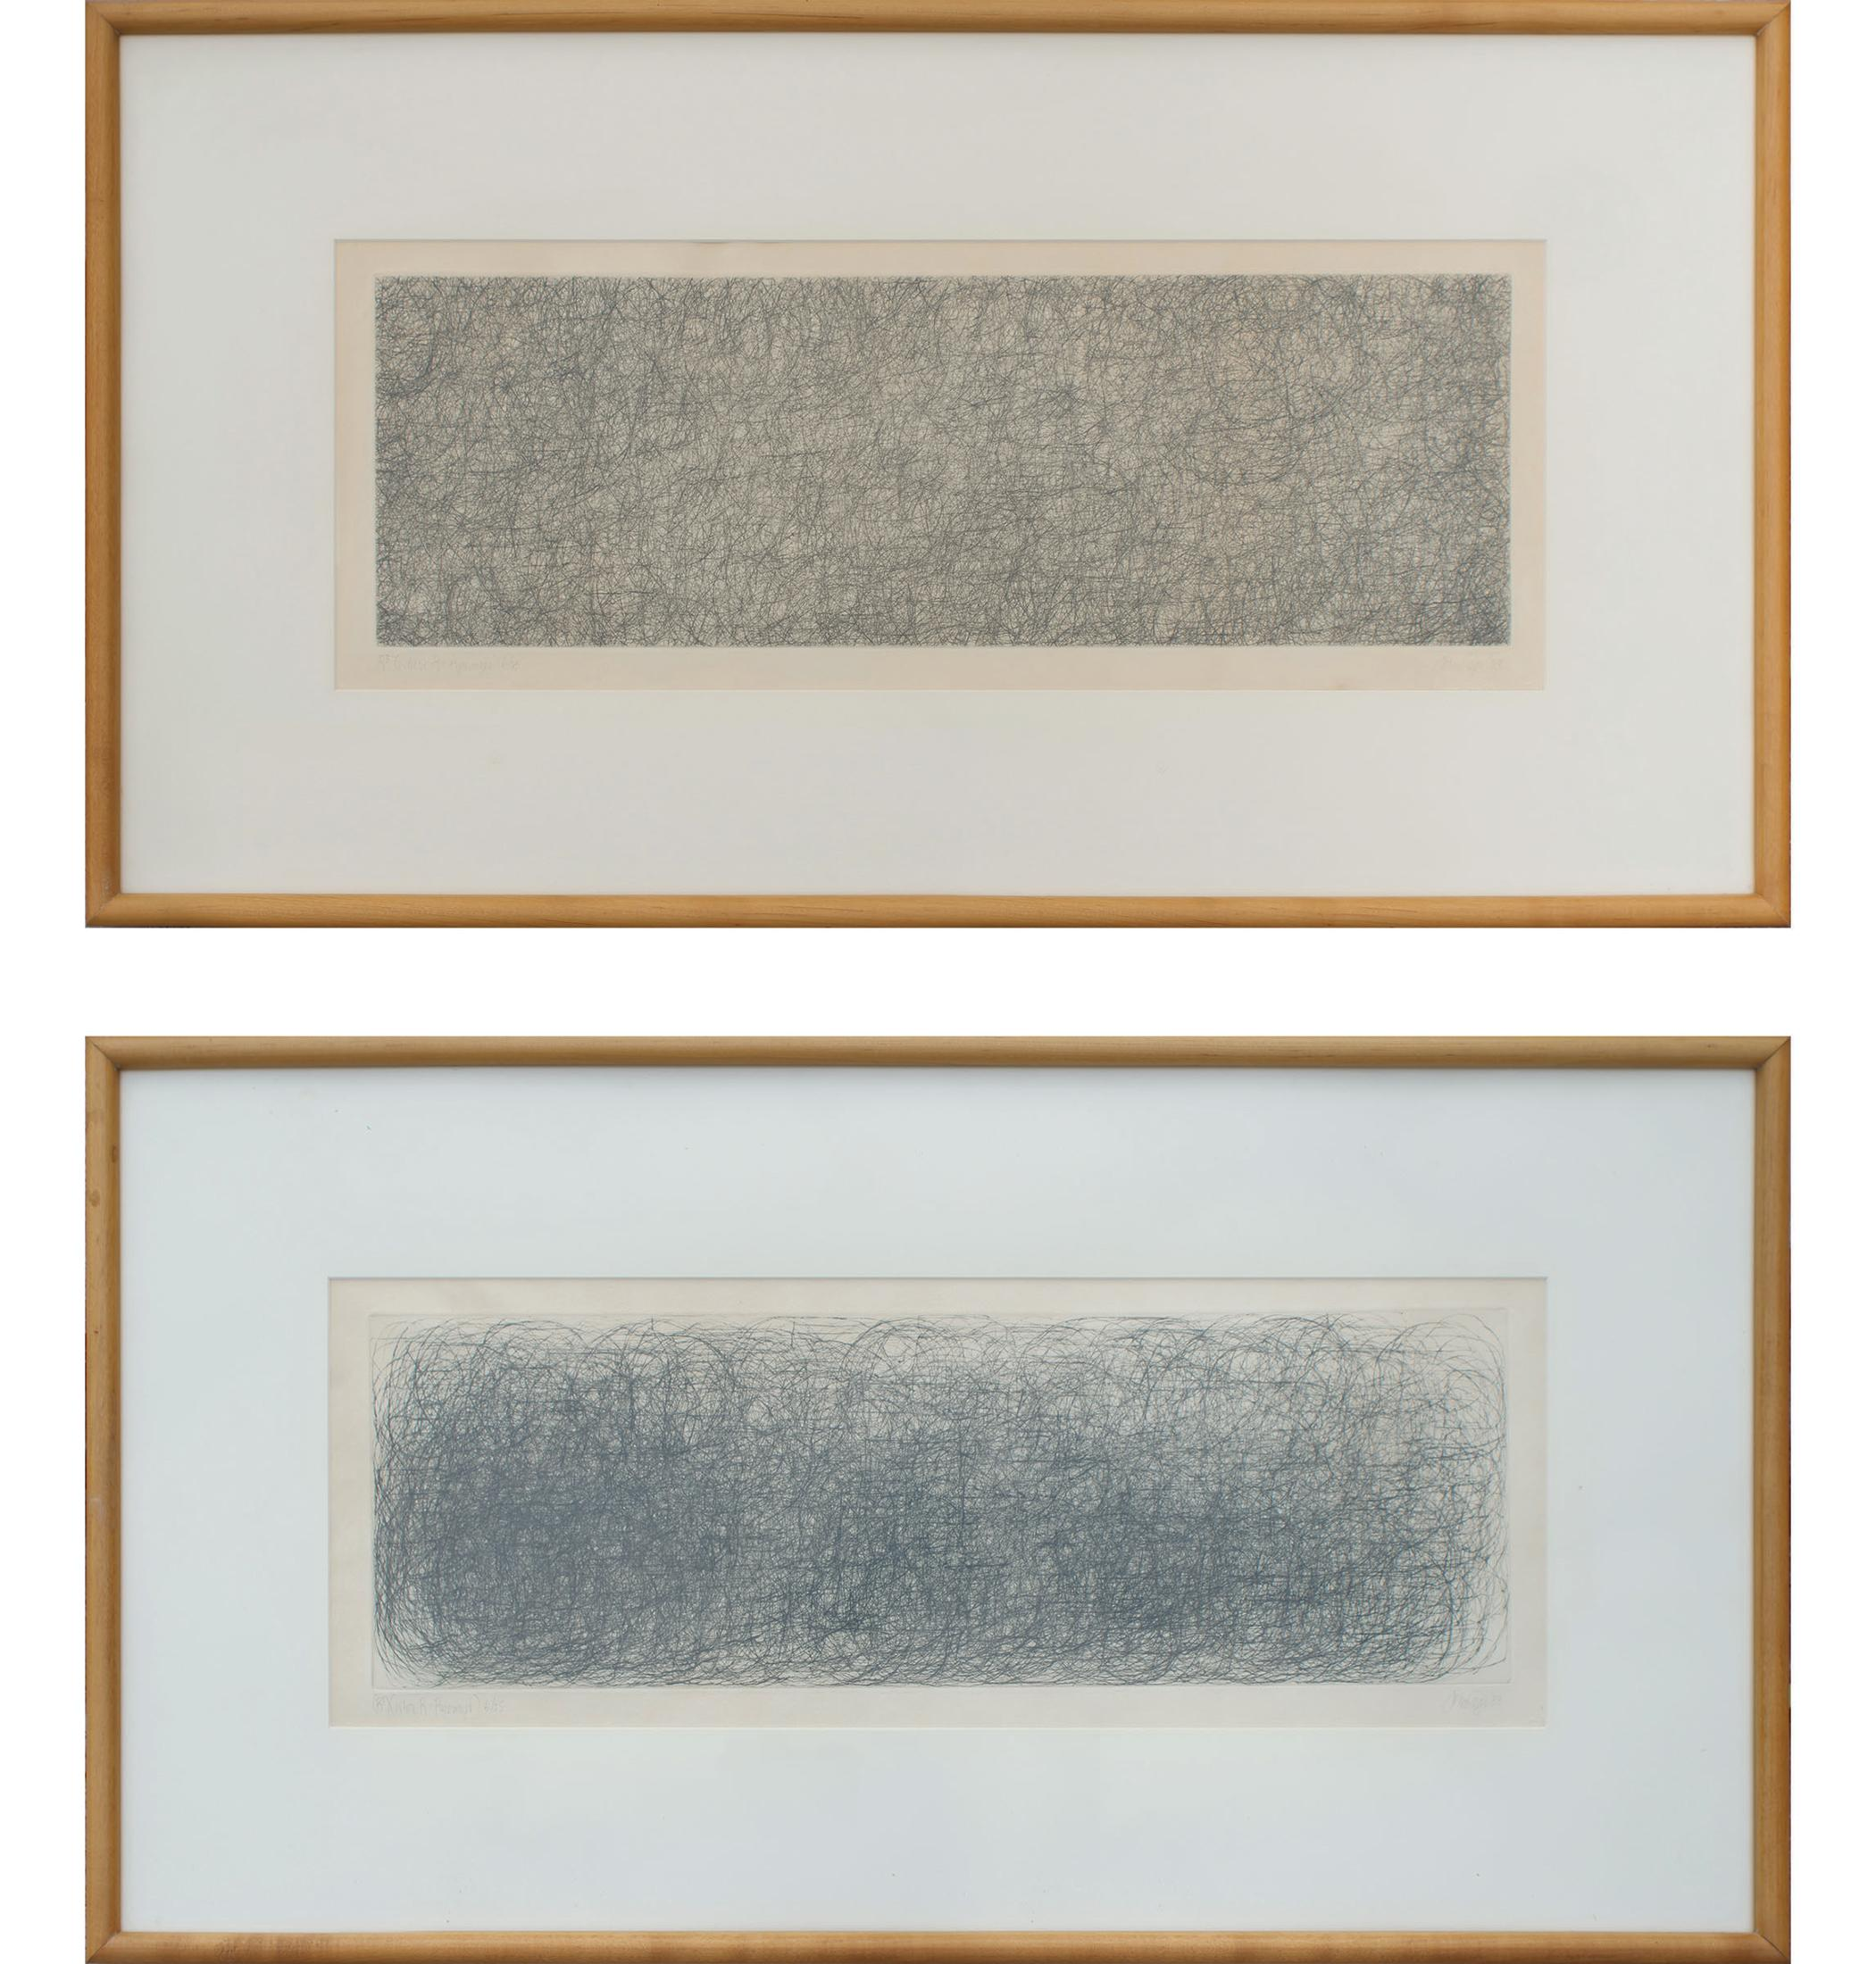 John Cage, R^3 Where R = Ryoanji, Diptych of Two Drypoint Etchings